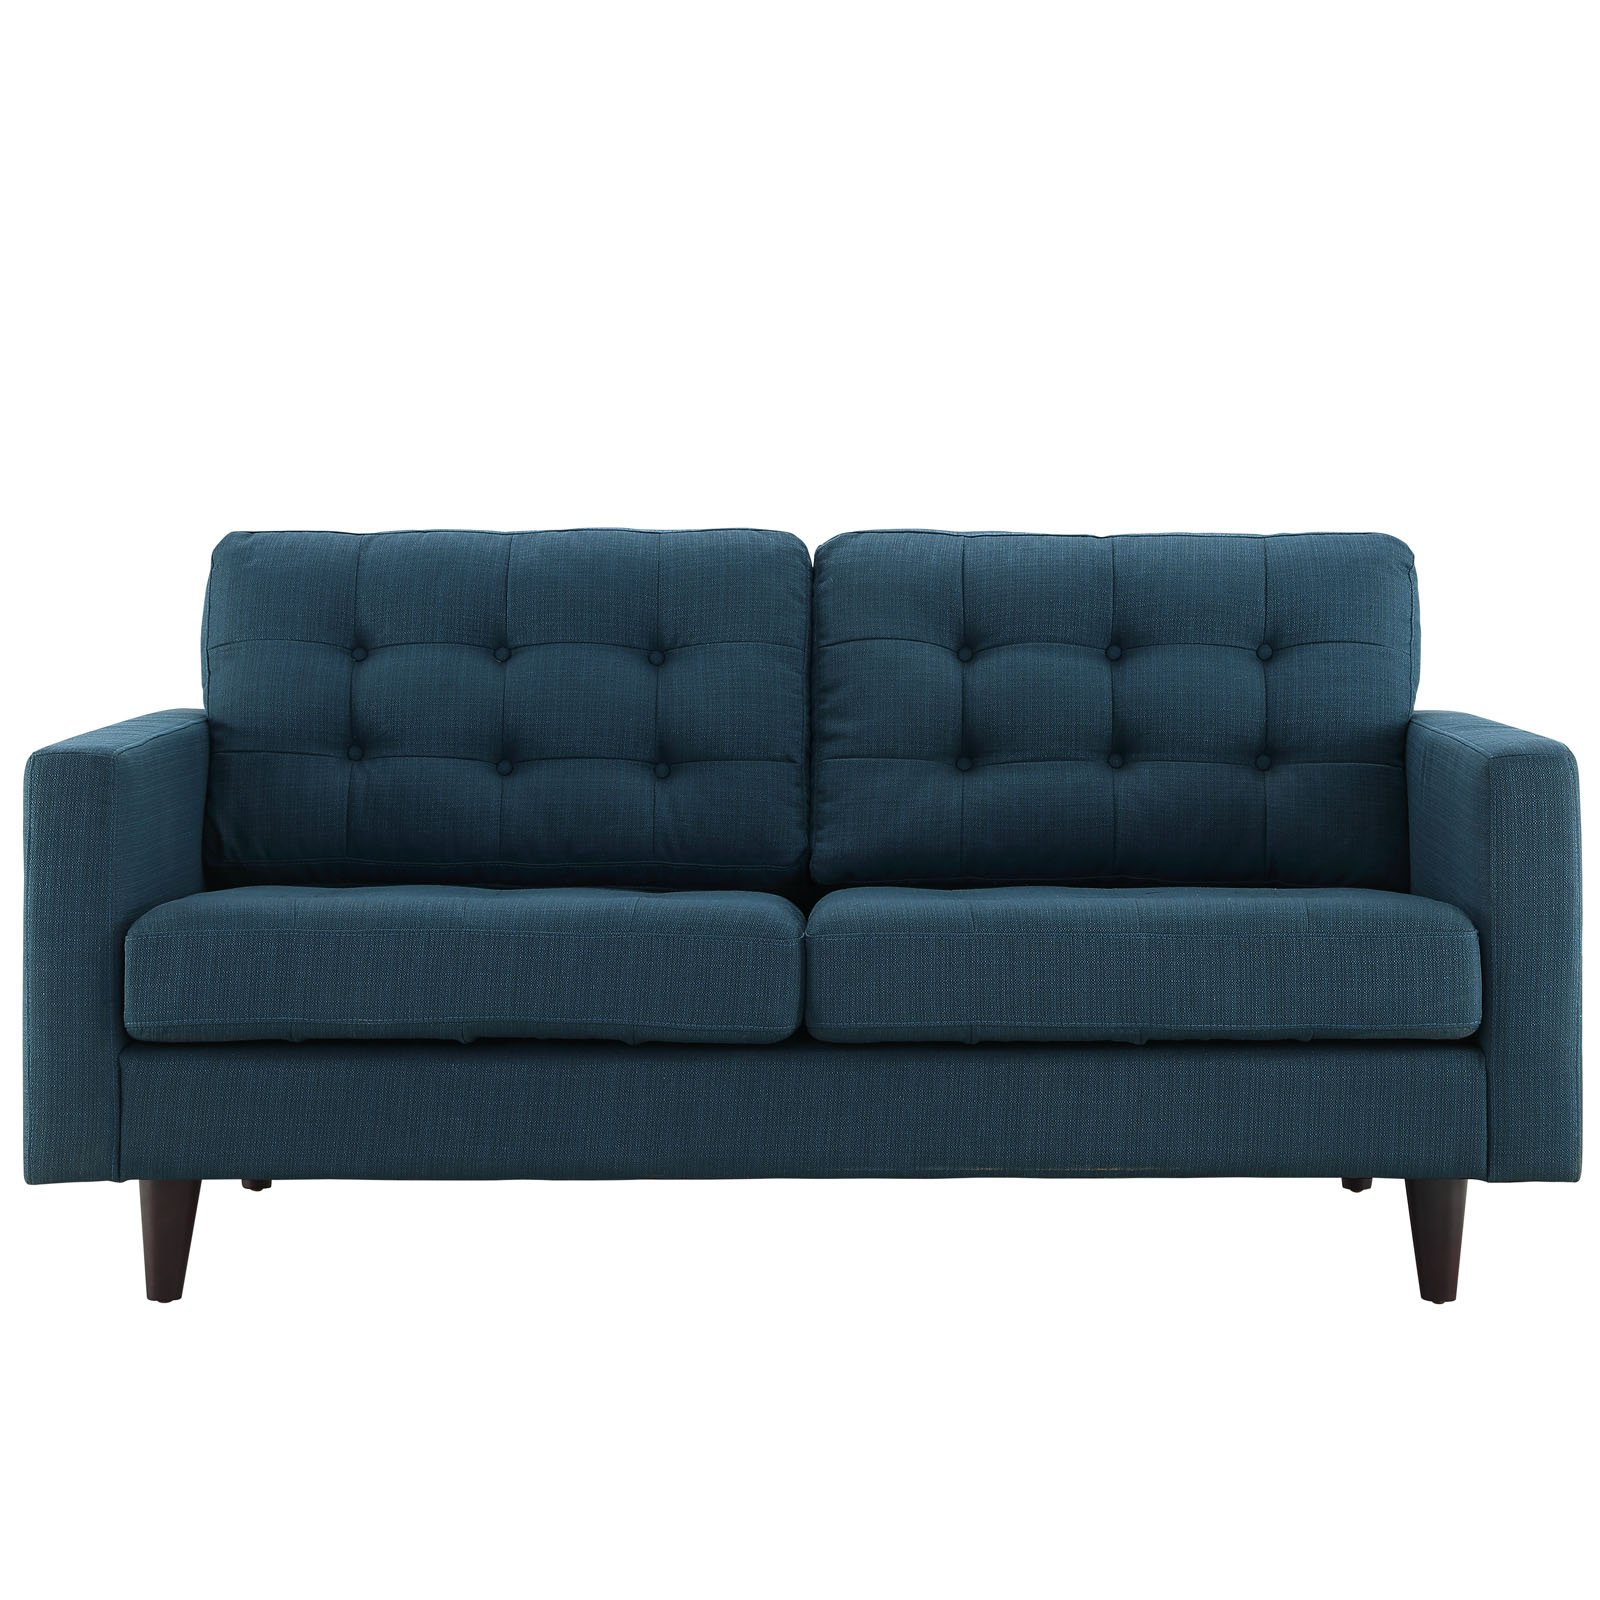 Modway Empress Mid-Century Modern Upholstered Fabric Loveseat In Azure